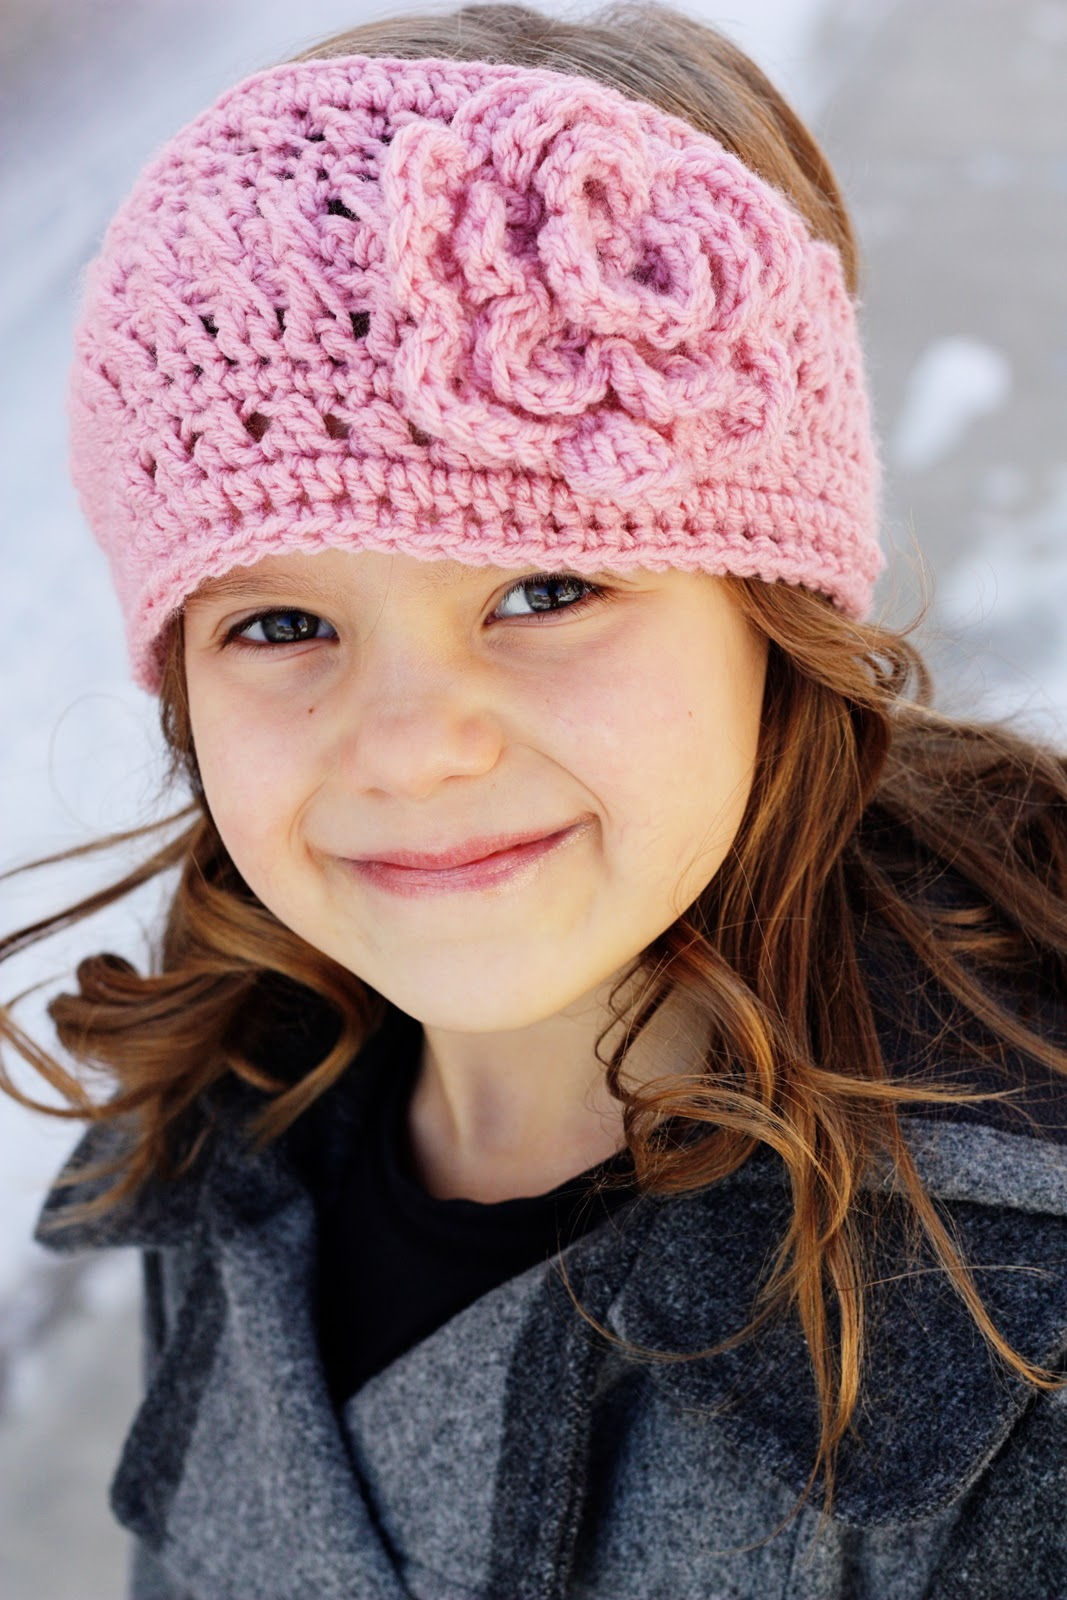 Free Crochet Patterns For Wide Headbands : FREE CROCHET PATTERNS HEADBANDS Crochet Tutorials